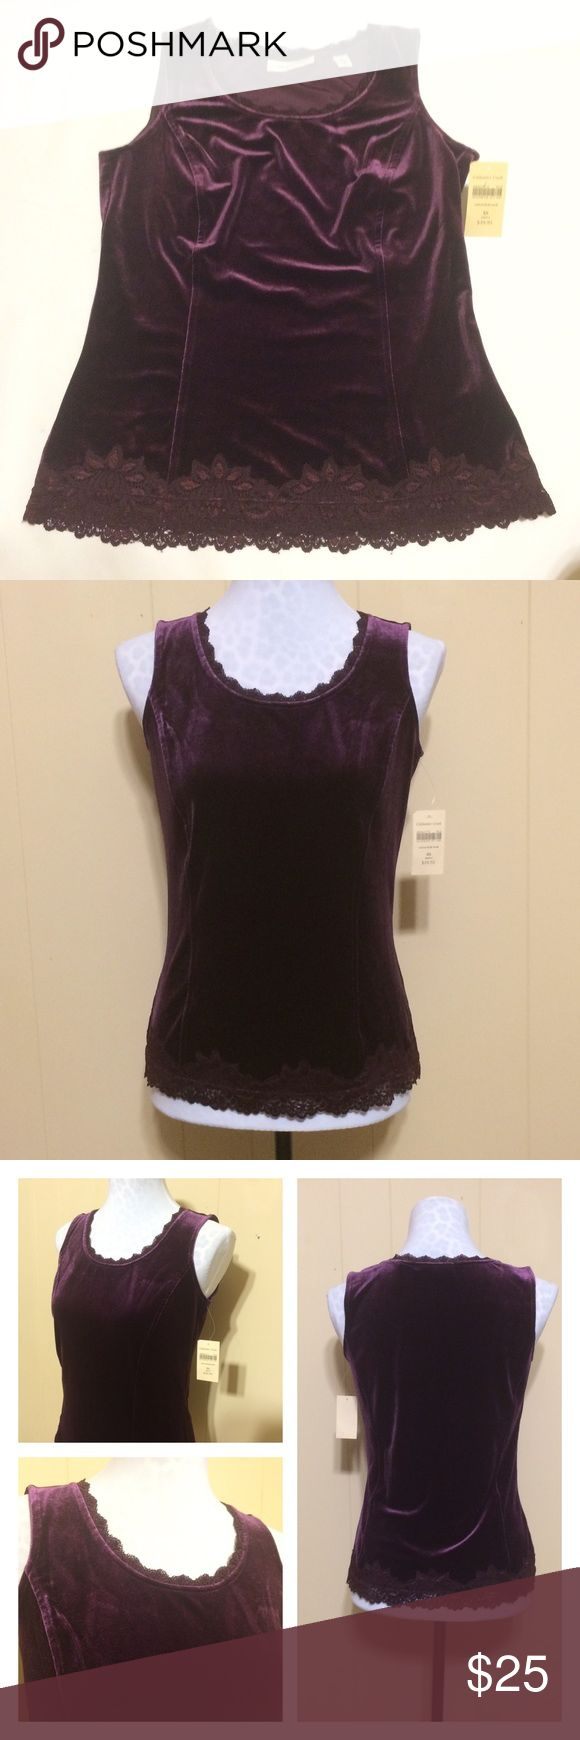 Coldwater Creek Velvet Top Royal purple top is NWT & flawless condition. Supple velvet (predicted to be Fall 2016's biggest trend). Lace details at neck & bottom hem. Darting/seams down front give the top great shape & definition. Labeled XS which is actually a 4 in their size chart. Great for layering, can easily be dressed up or down. Coldwater Creek Tops Blouses